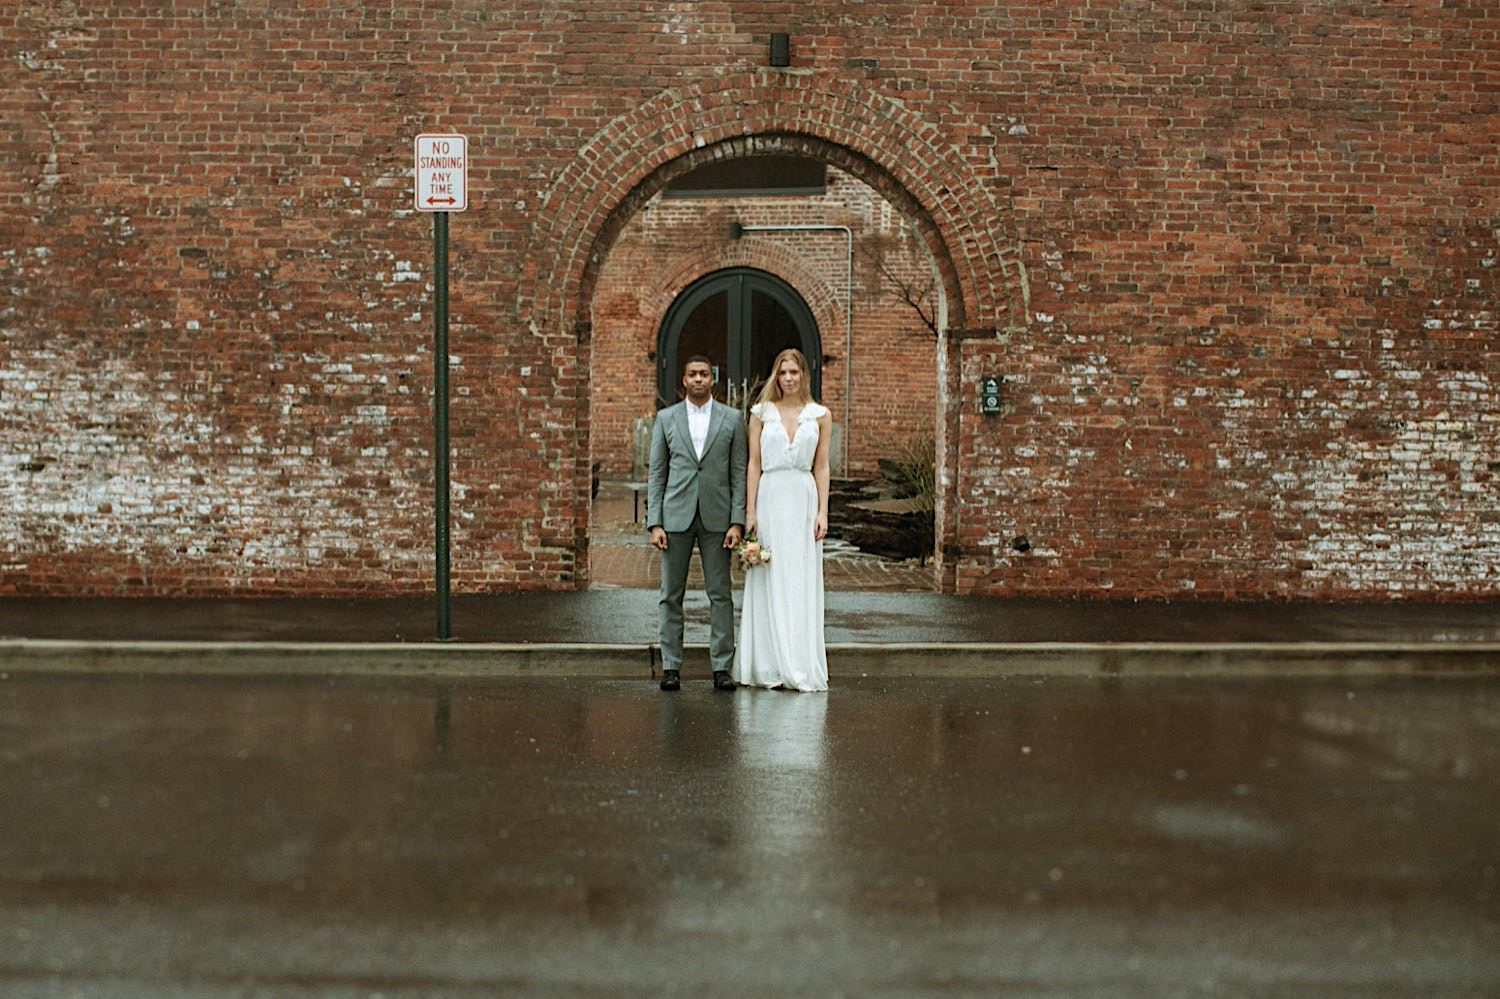 DUMBO Wedding Photography - A couple stands straight on looking at the camera with St. Ann's warehouse in the background in DUMBO